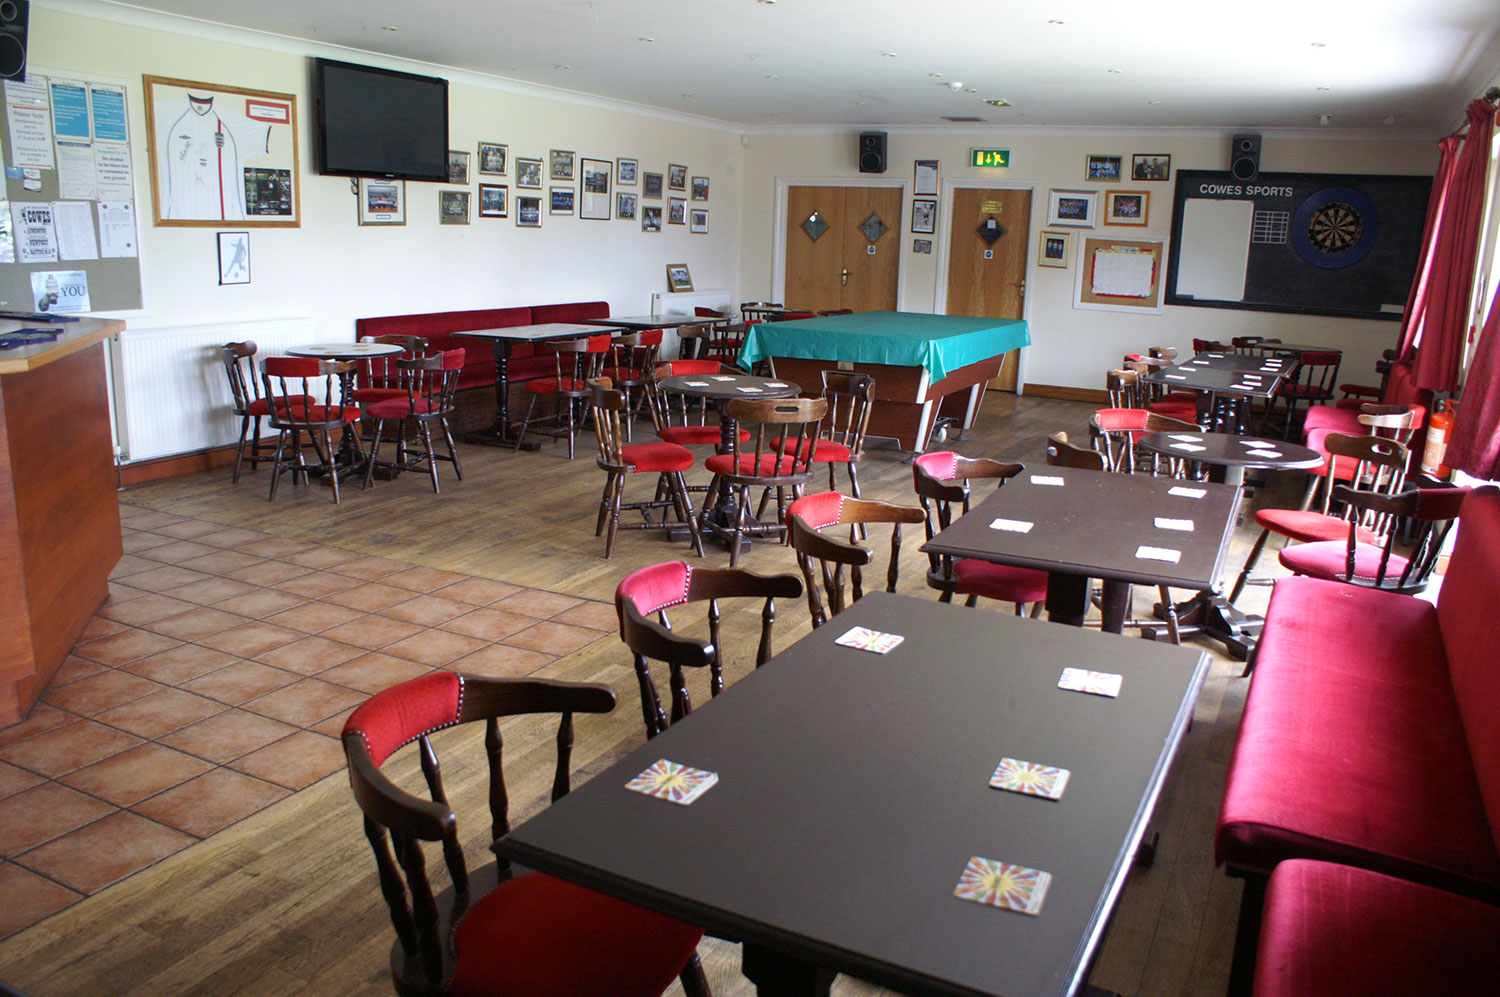 Cowes Sports Clubhouse 2